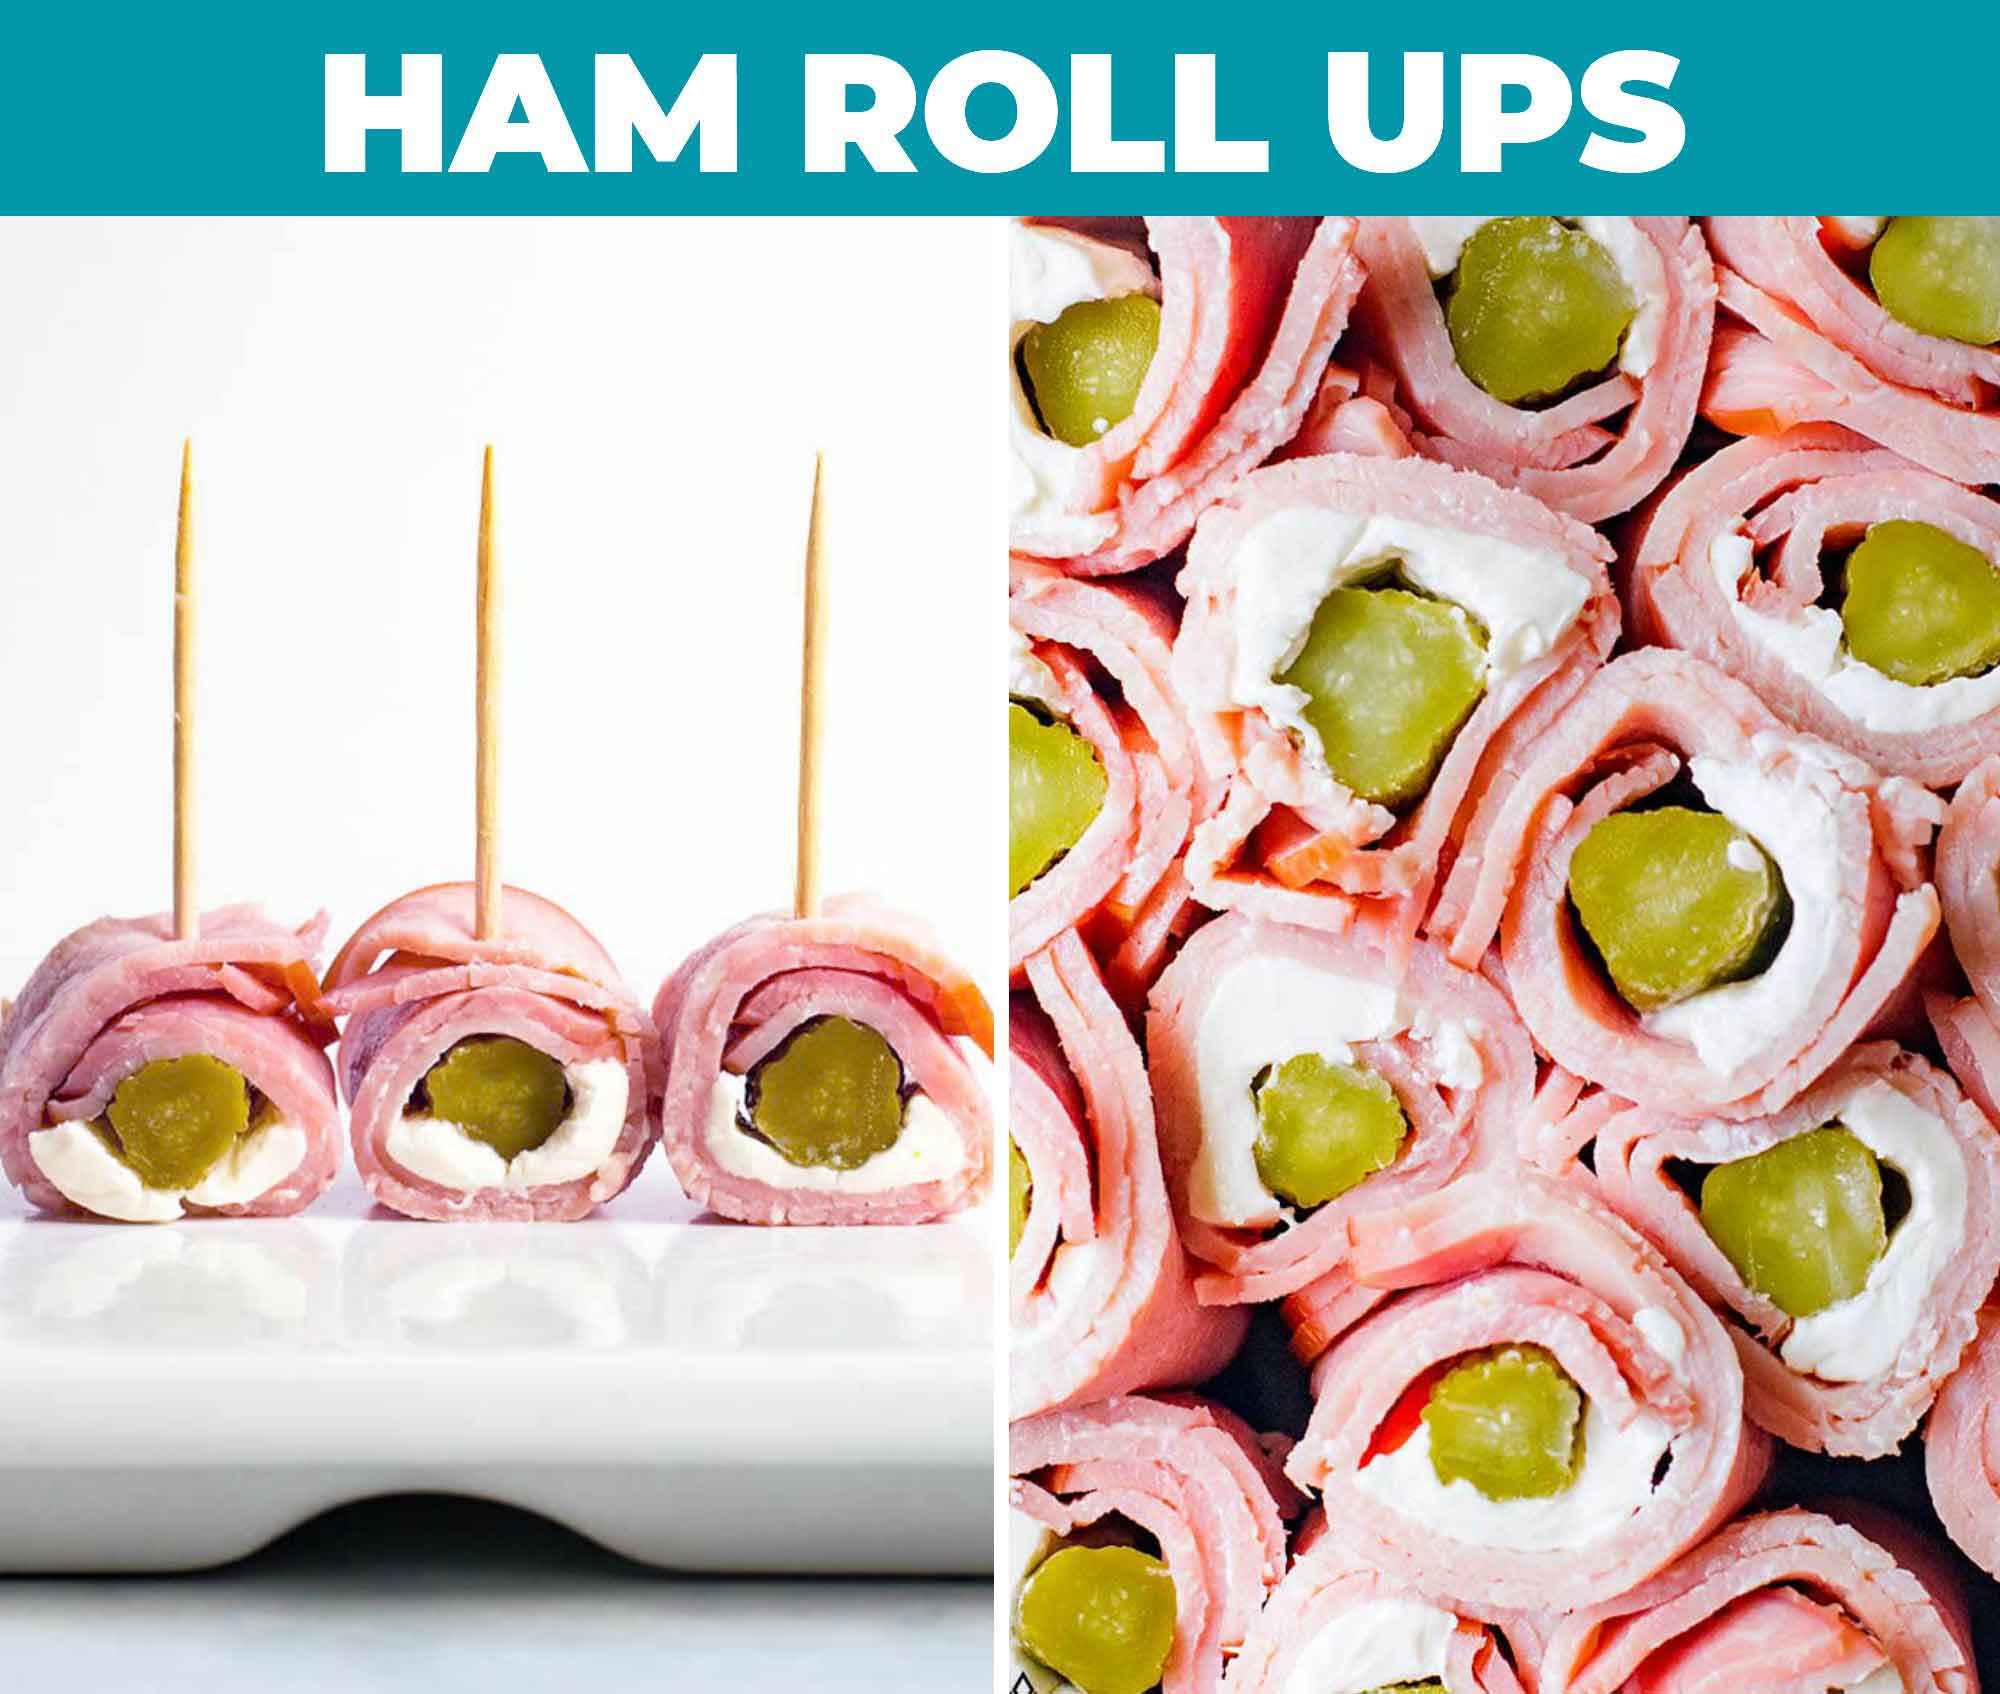 Images of ham roll ups